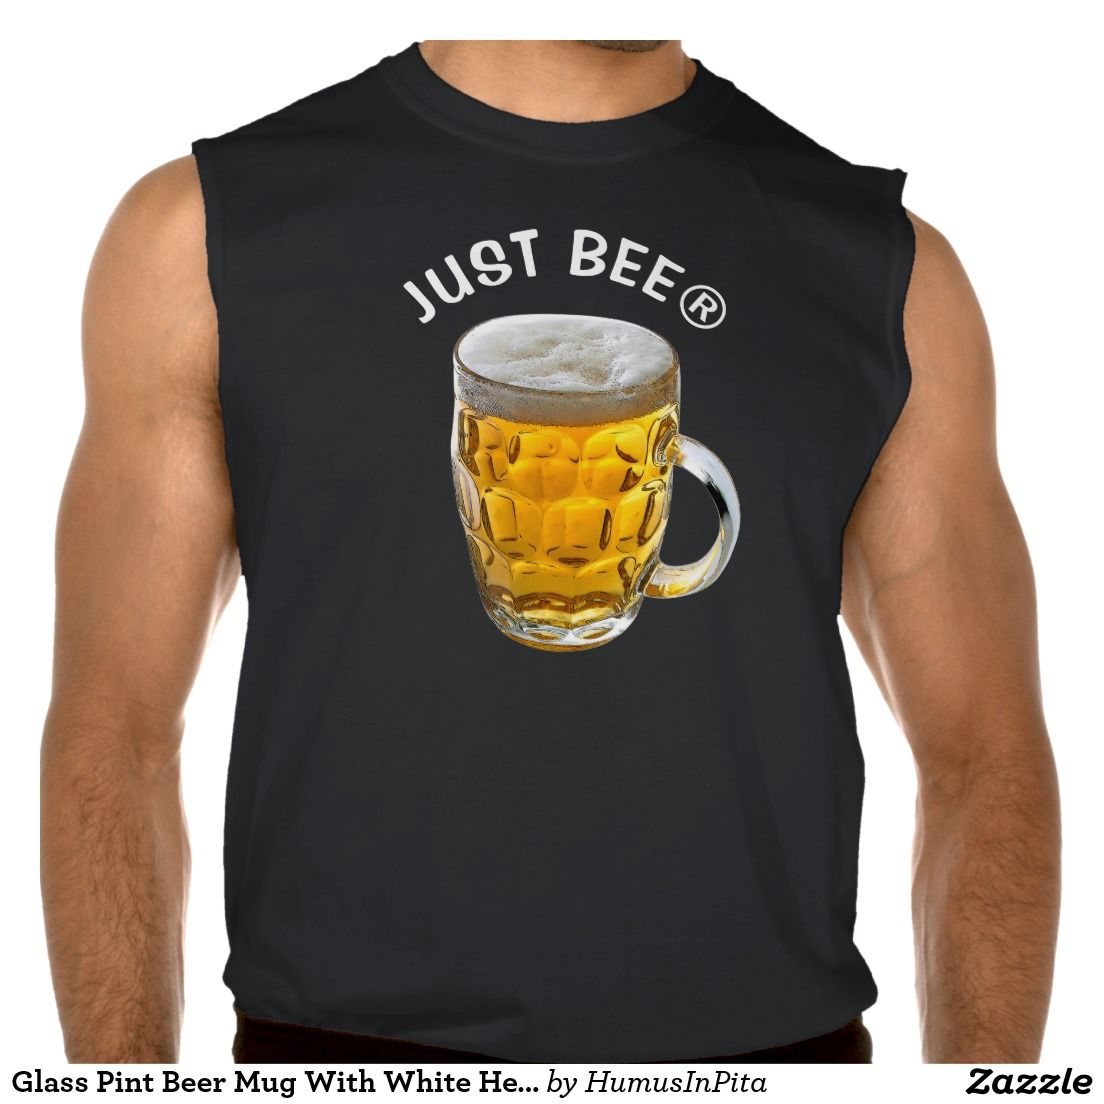 Glass Pint Beer Mug With White Head With Your Text Sleeveless Shirt